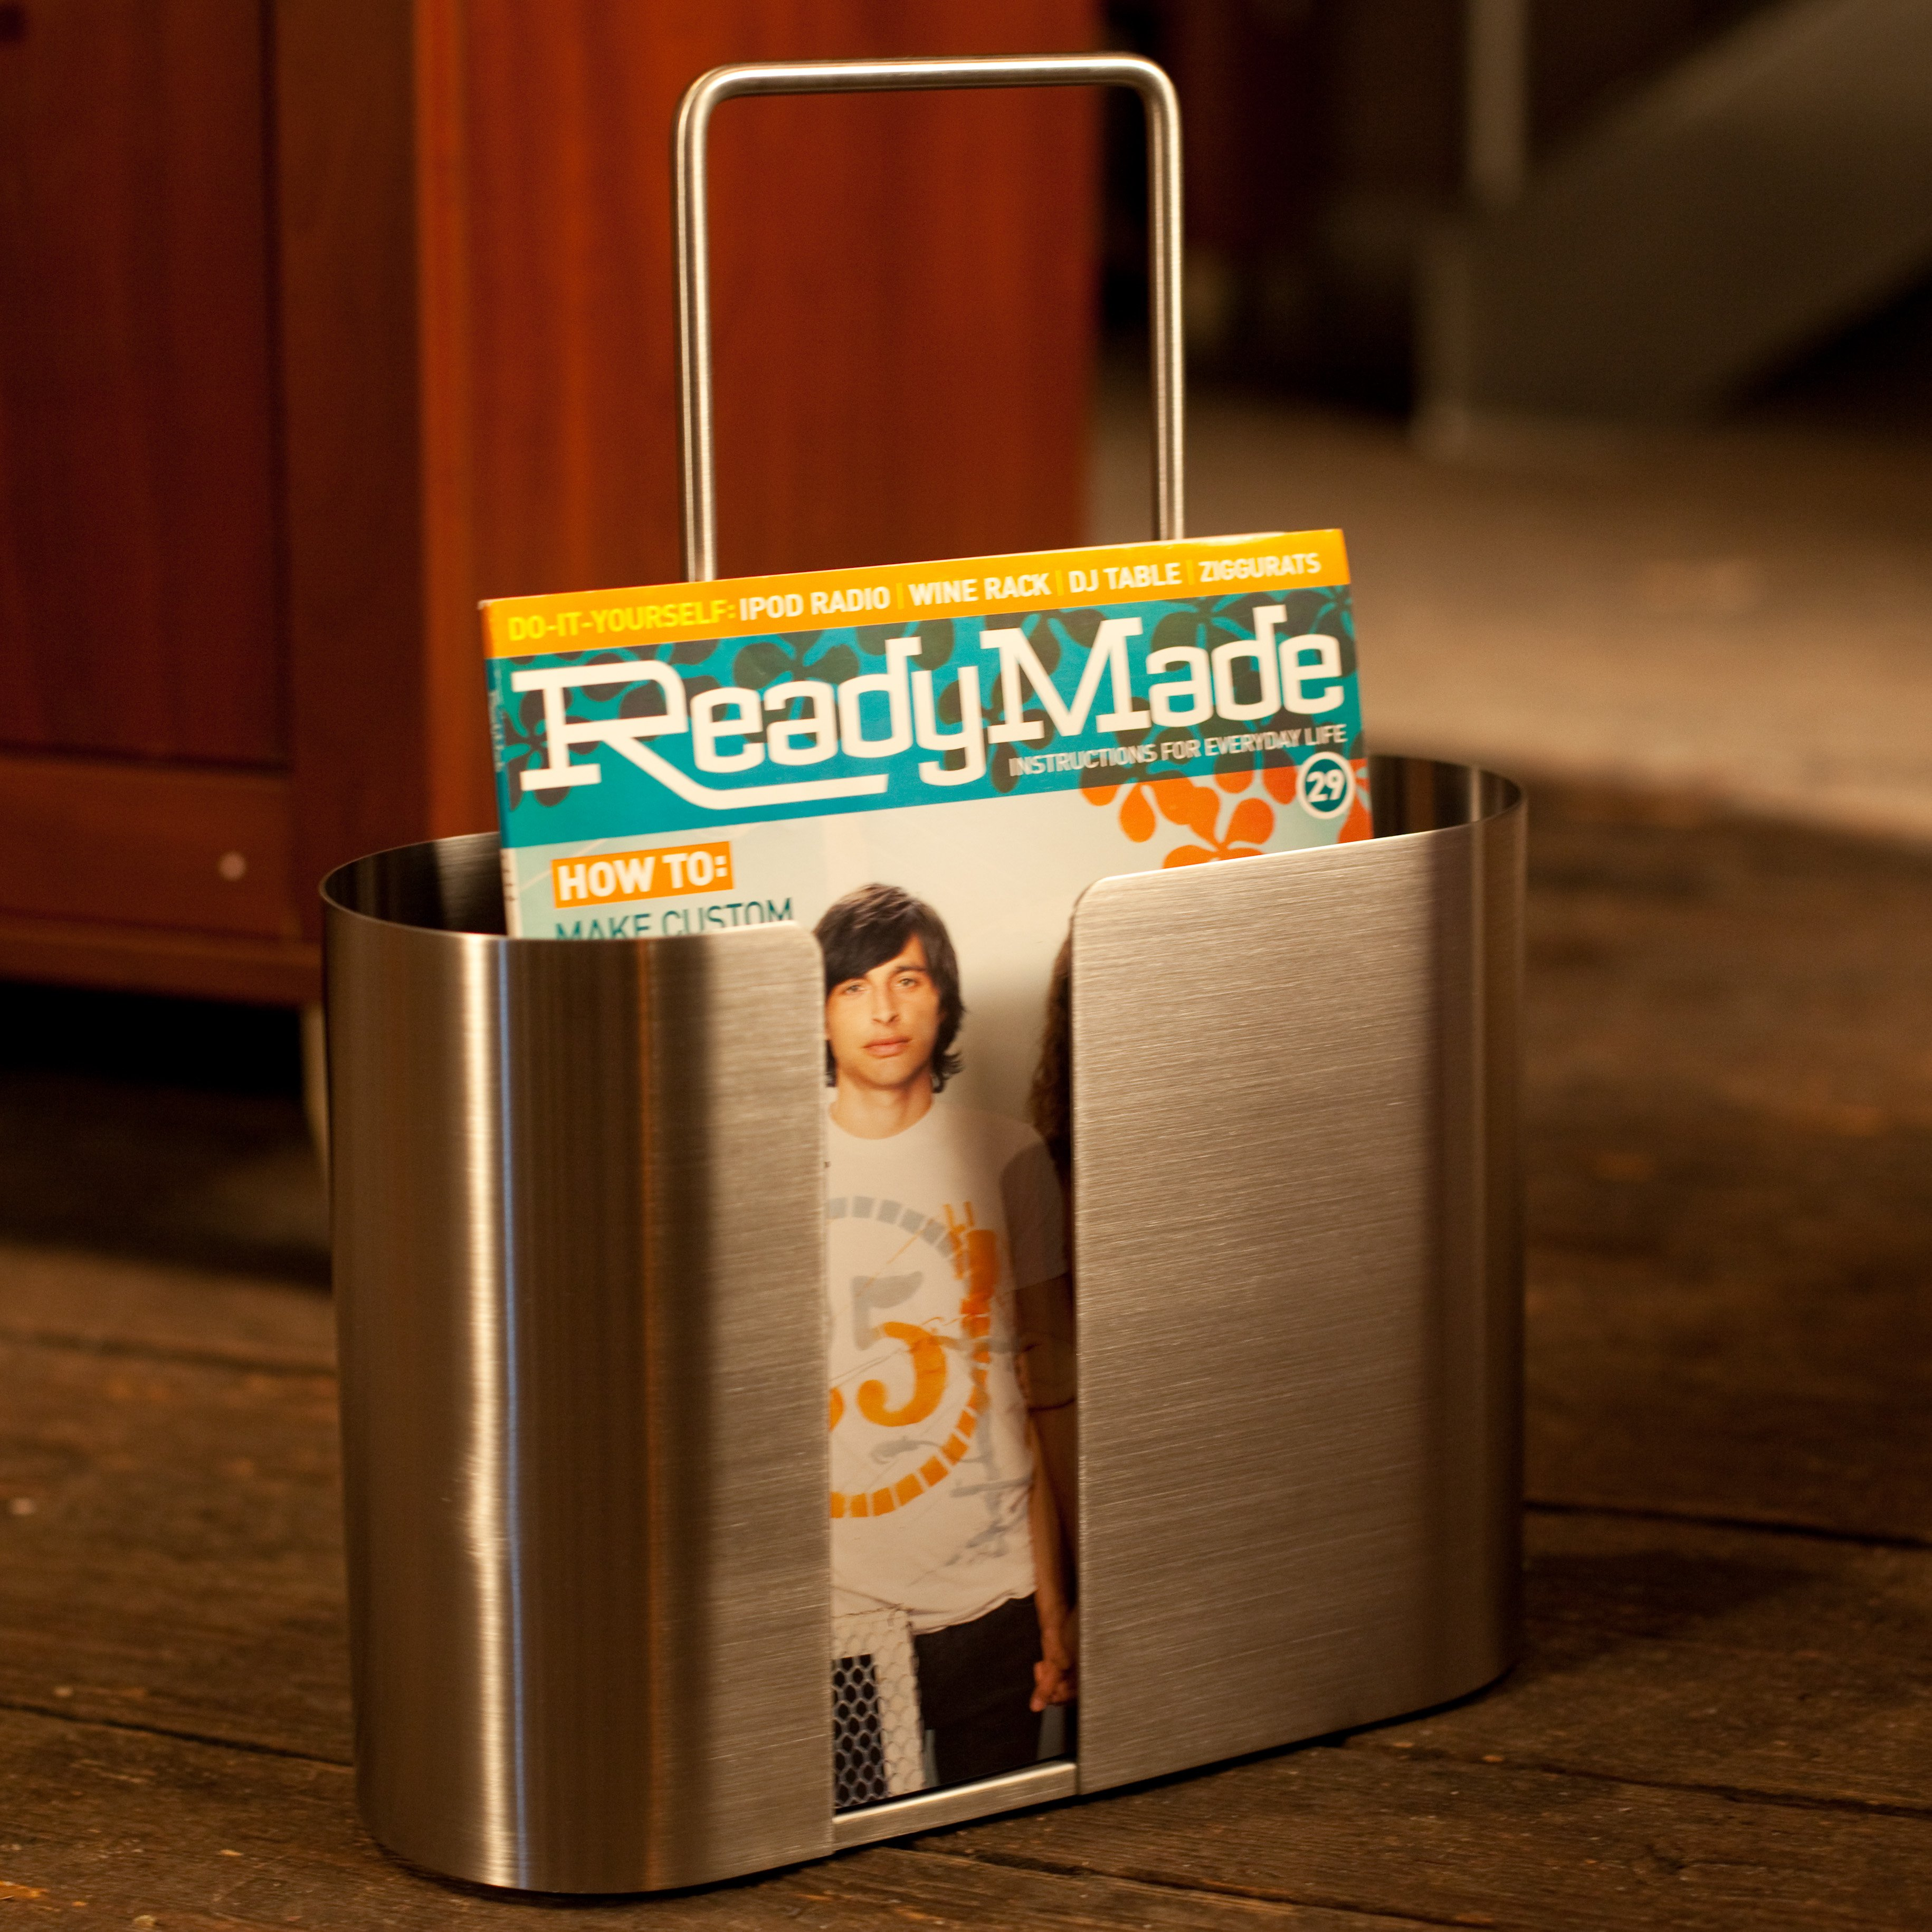 Seamo Stainless Steel Magazine Rack